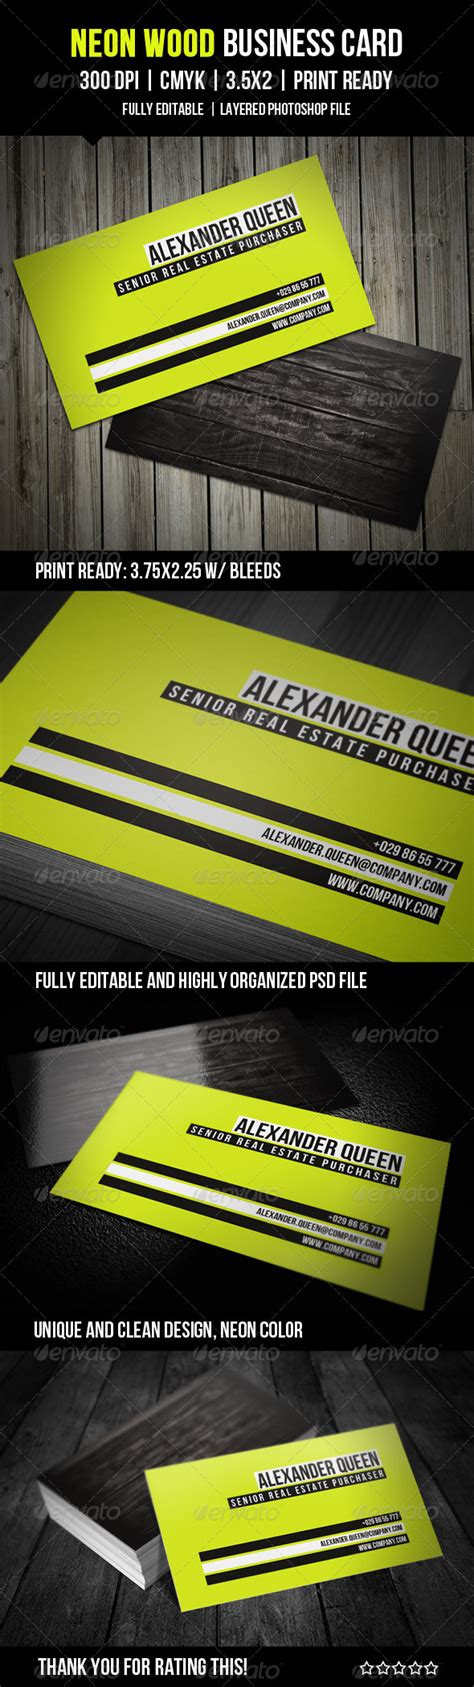 neon business cards templates neon wood business card by lavie1blonde graphicriver